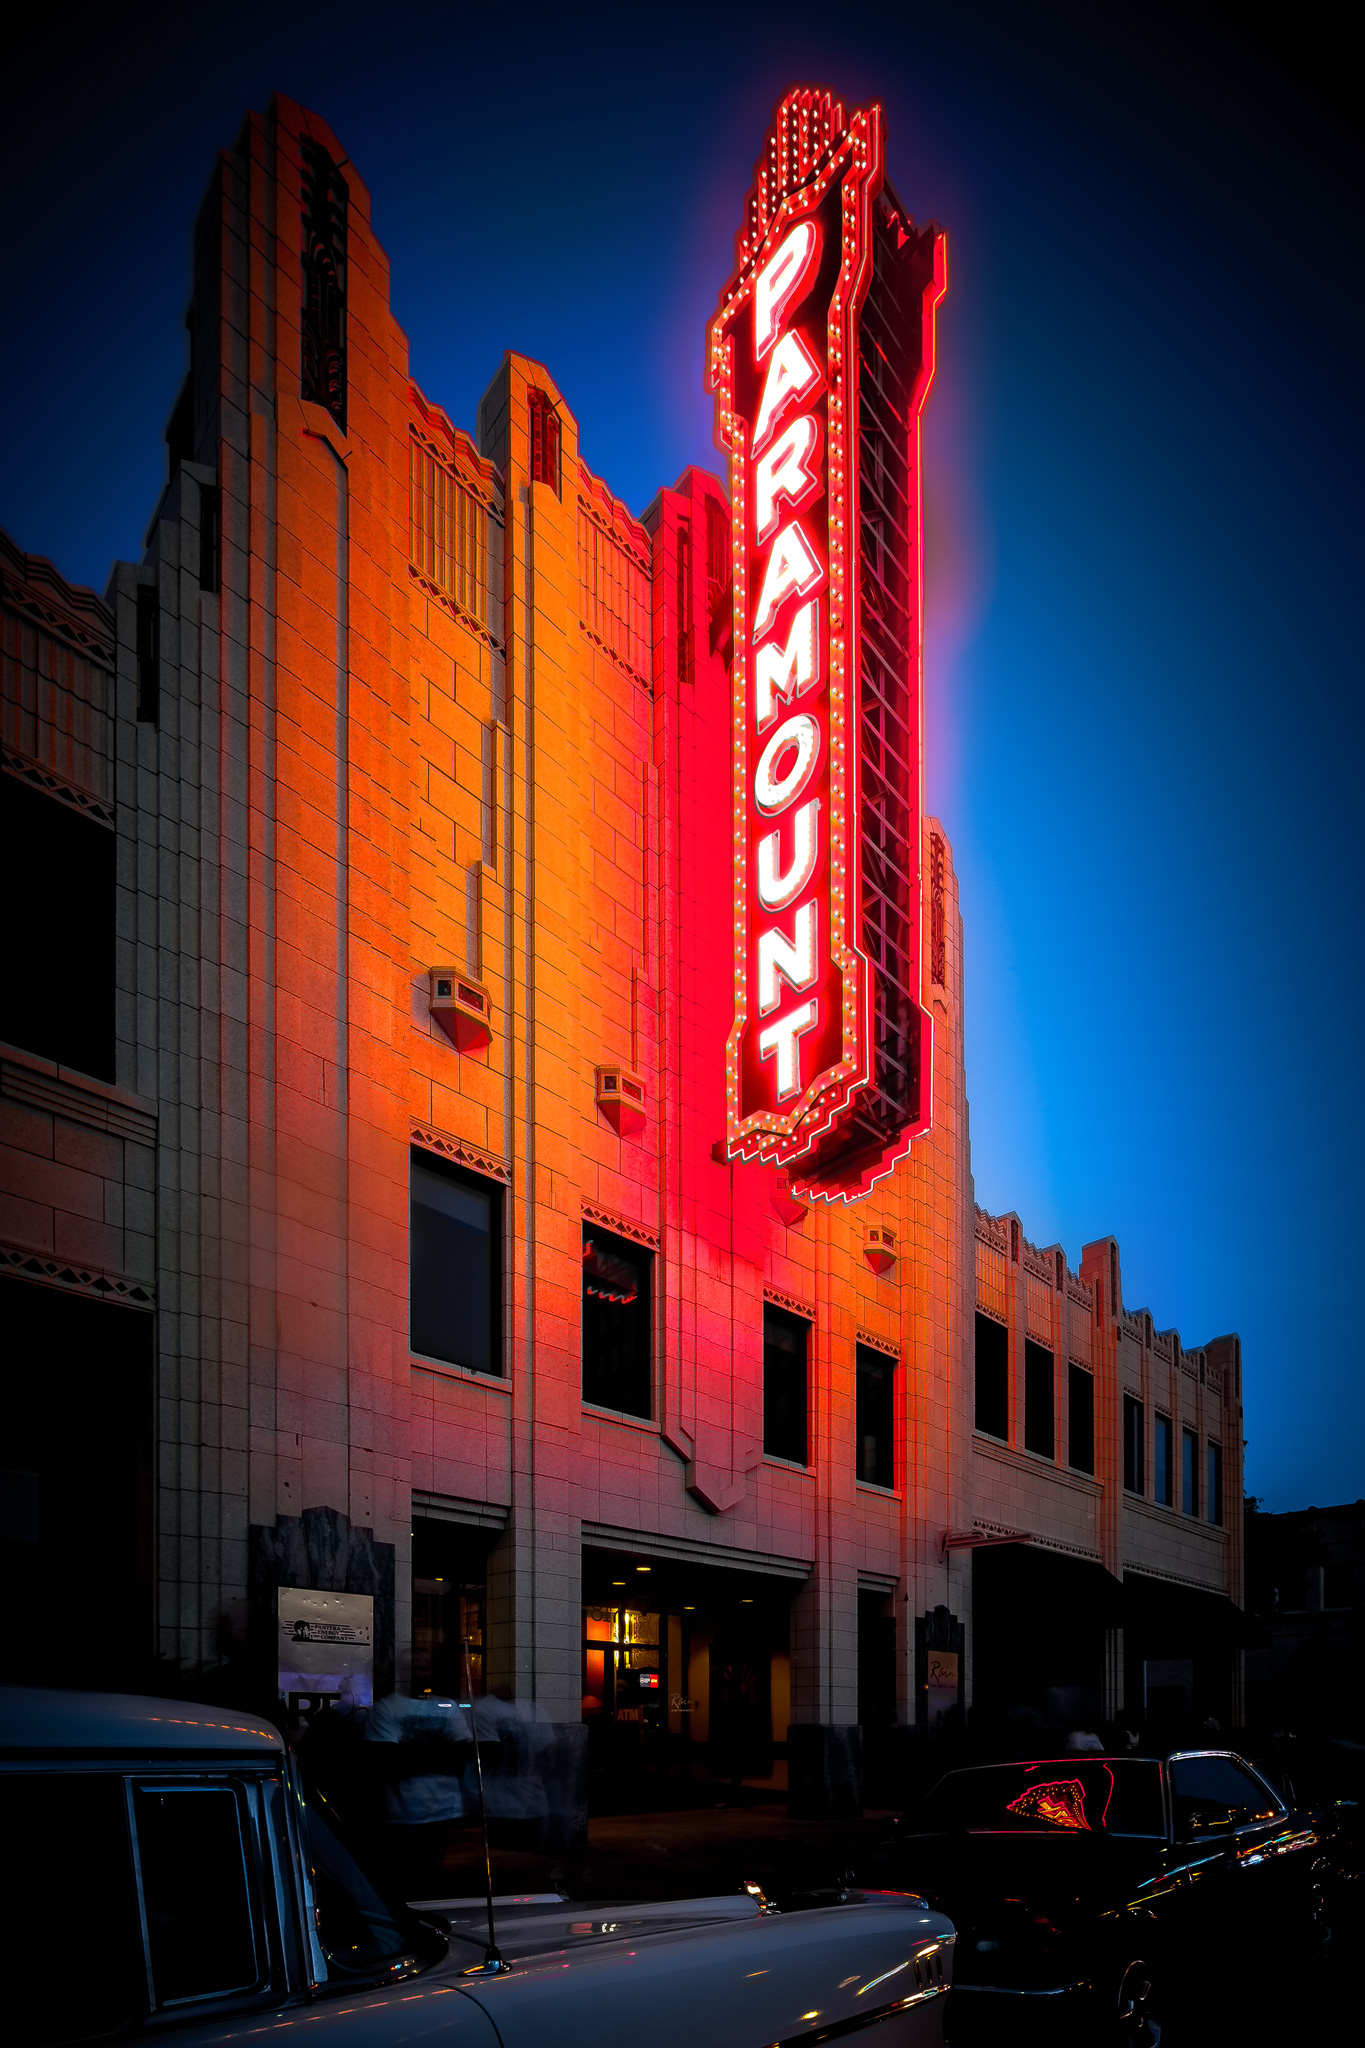 Paramount Theater at night